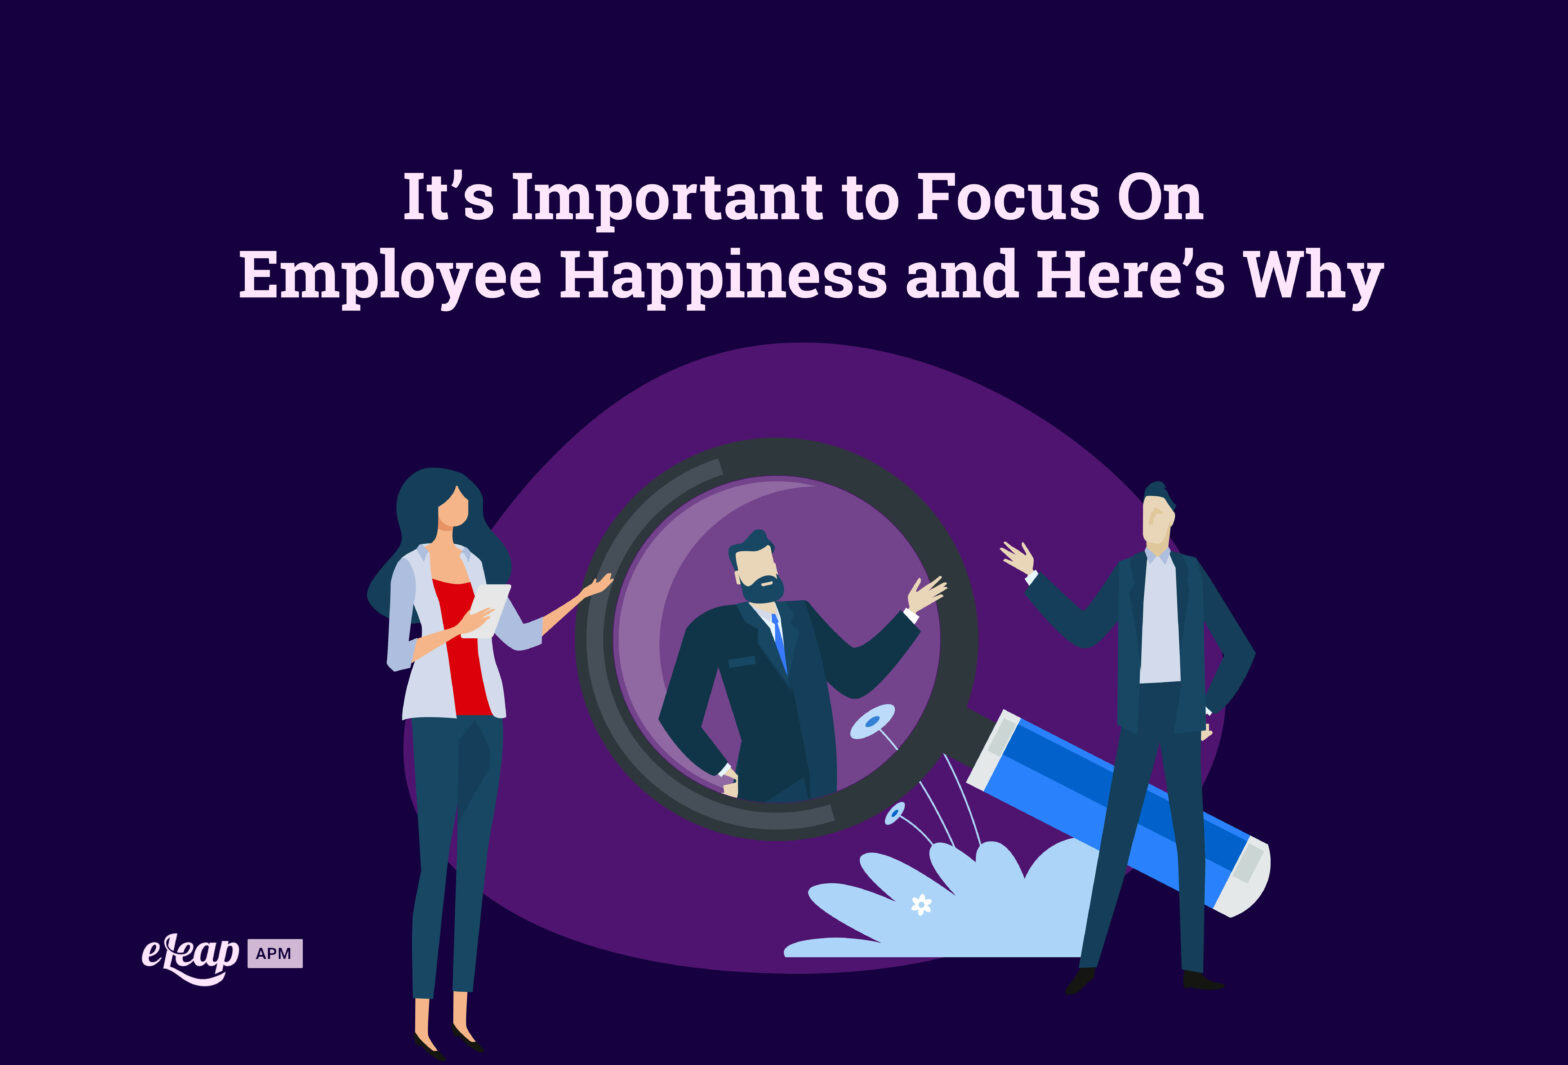 It's Important to Focus On Employee Happiness and Here's Why